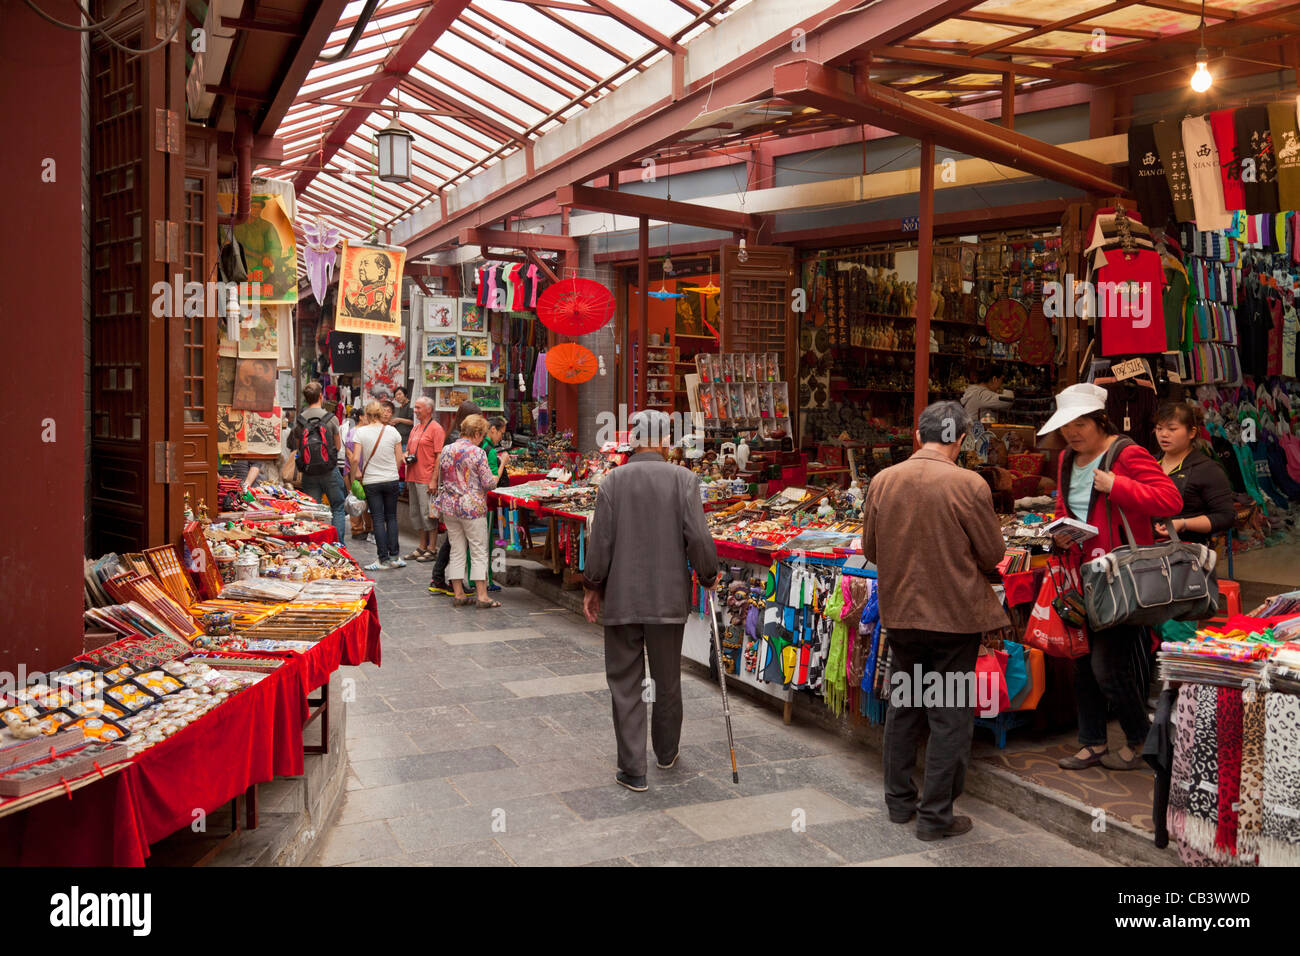 Traditional shops and market stalls, Xian covered market, Shaanxi Province, PRC, People's Republic of China, - Stock Image